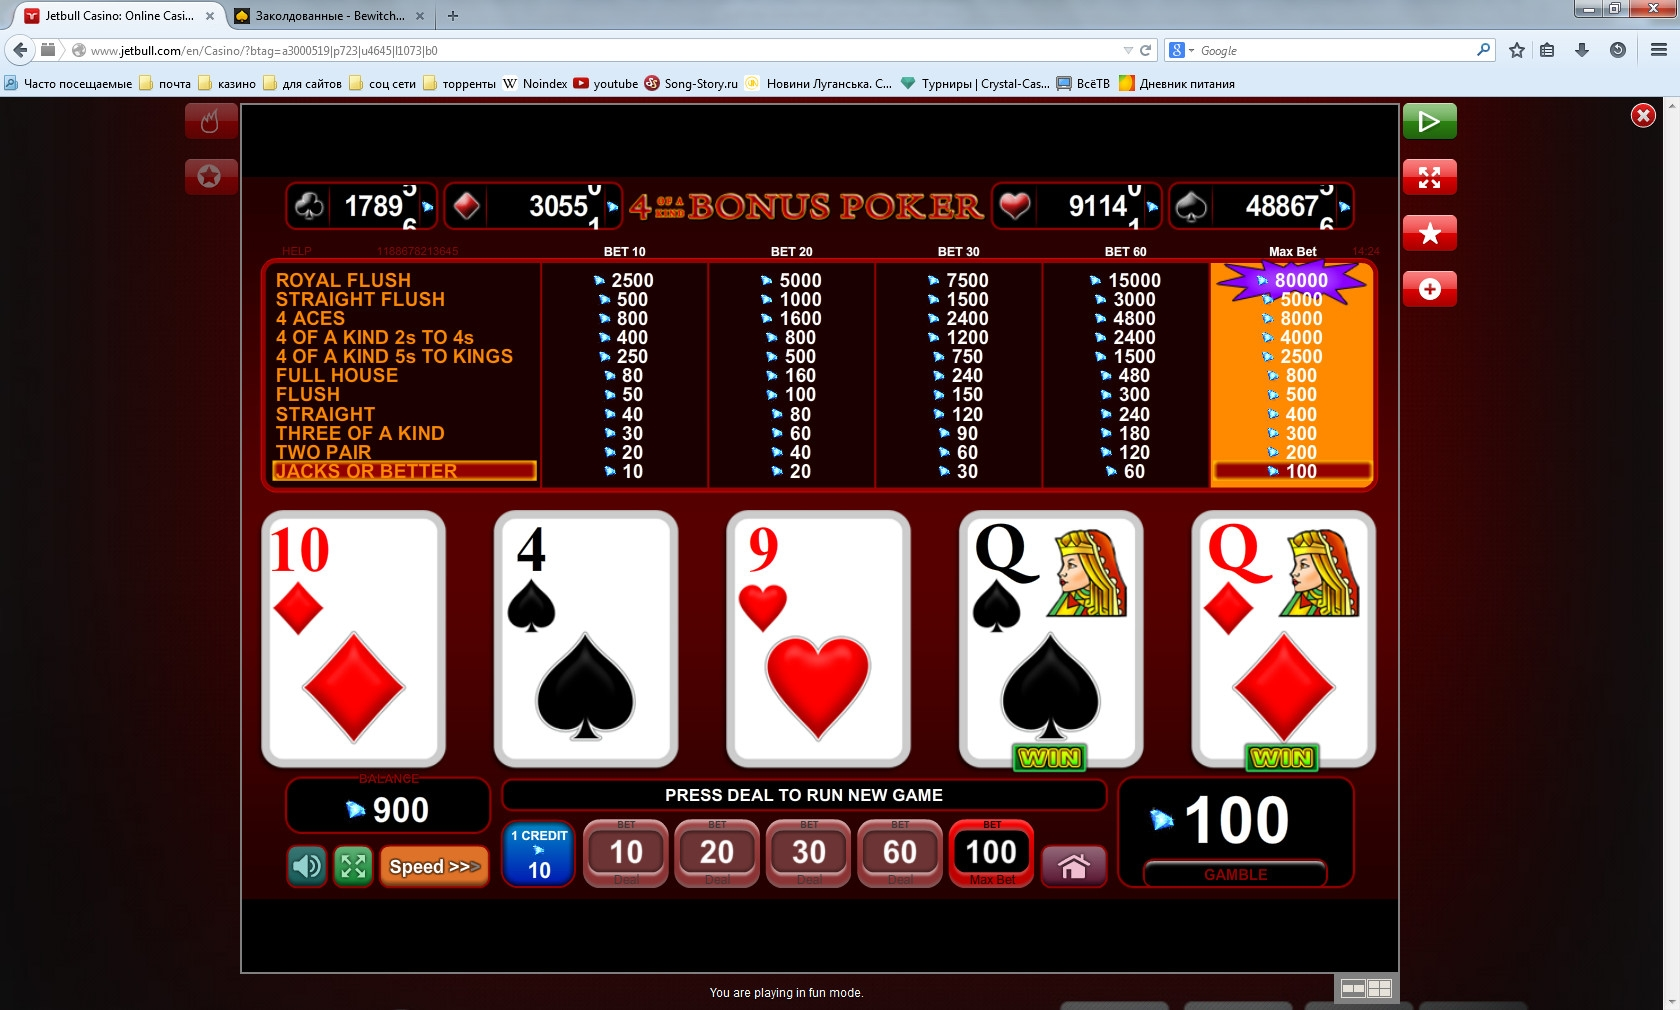 bonus online casino poker 4 of a kind